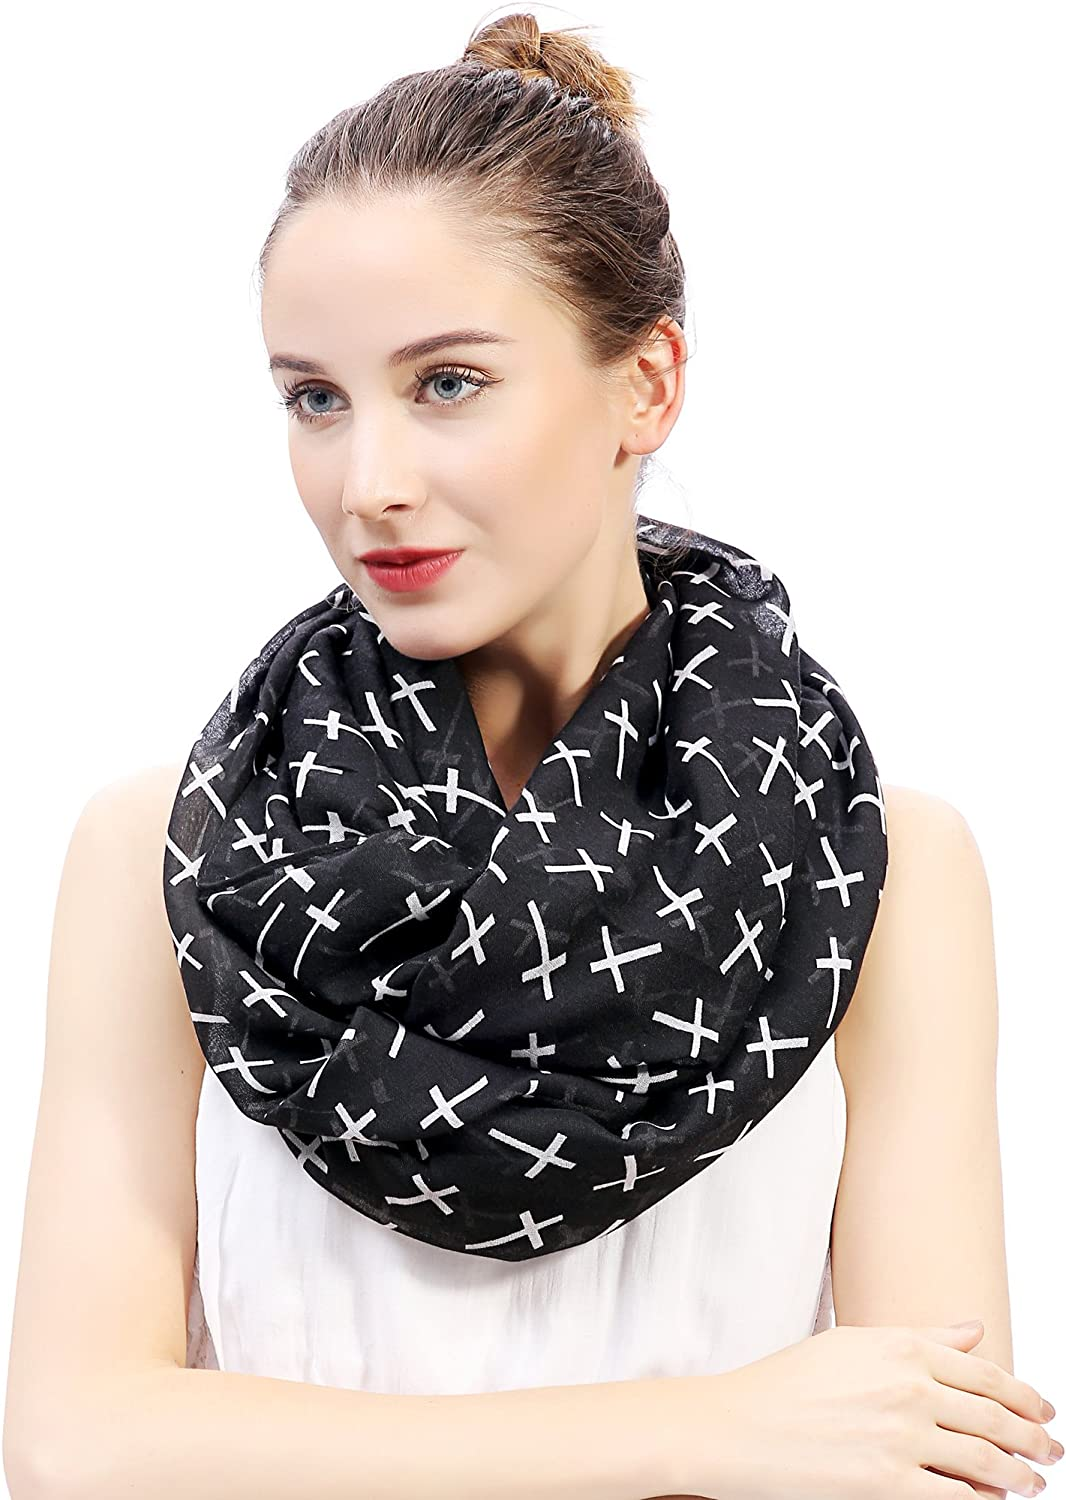 Lina & Lily Cross Print Infinity Loop Scarf for Women Lightweight